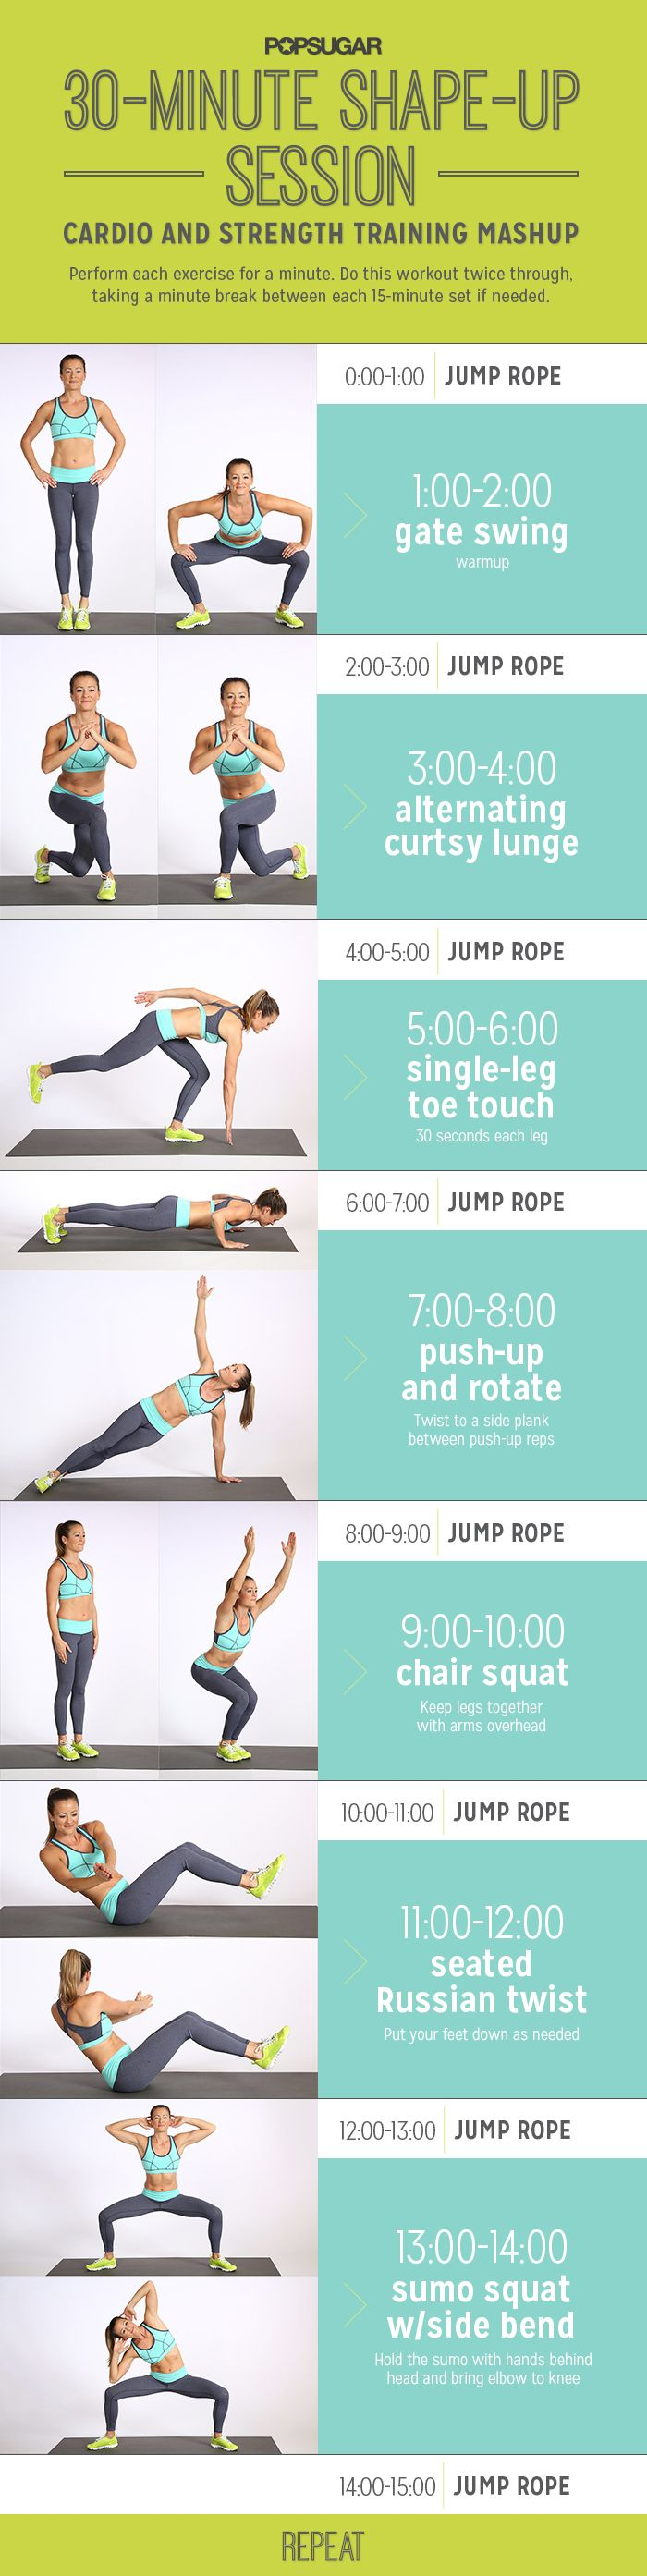 Quick Shape-Up Session: Cardio Mixed With Bodyweight Moves